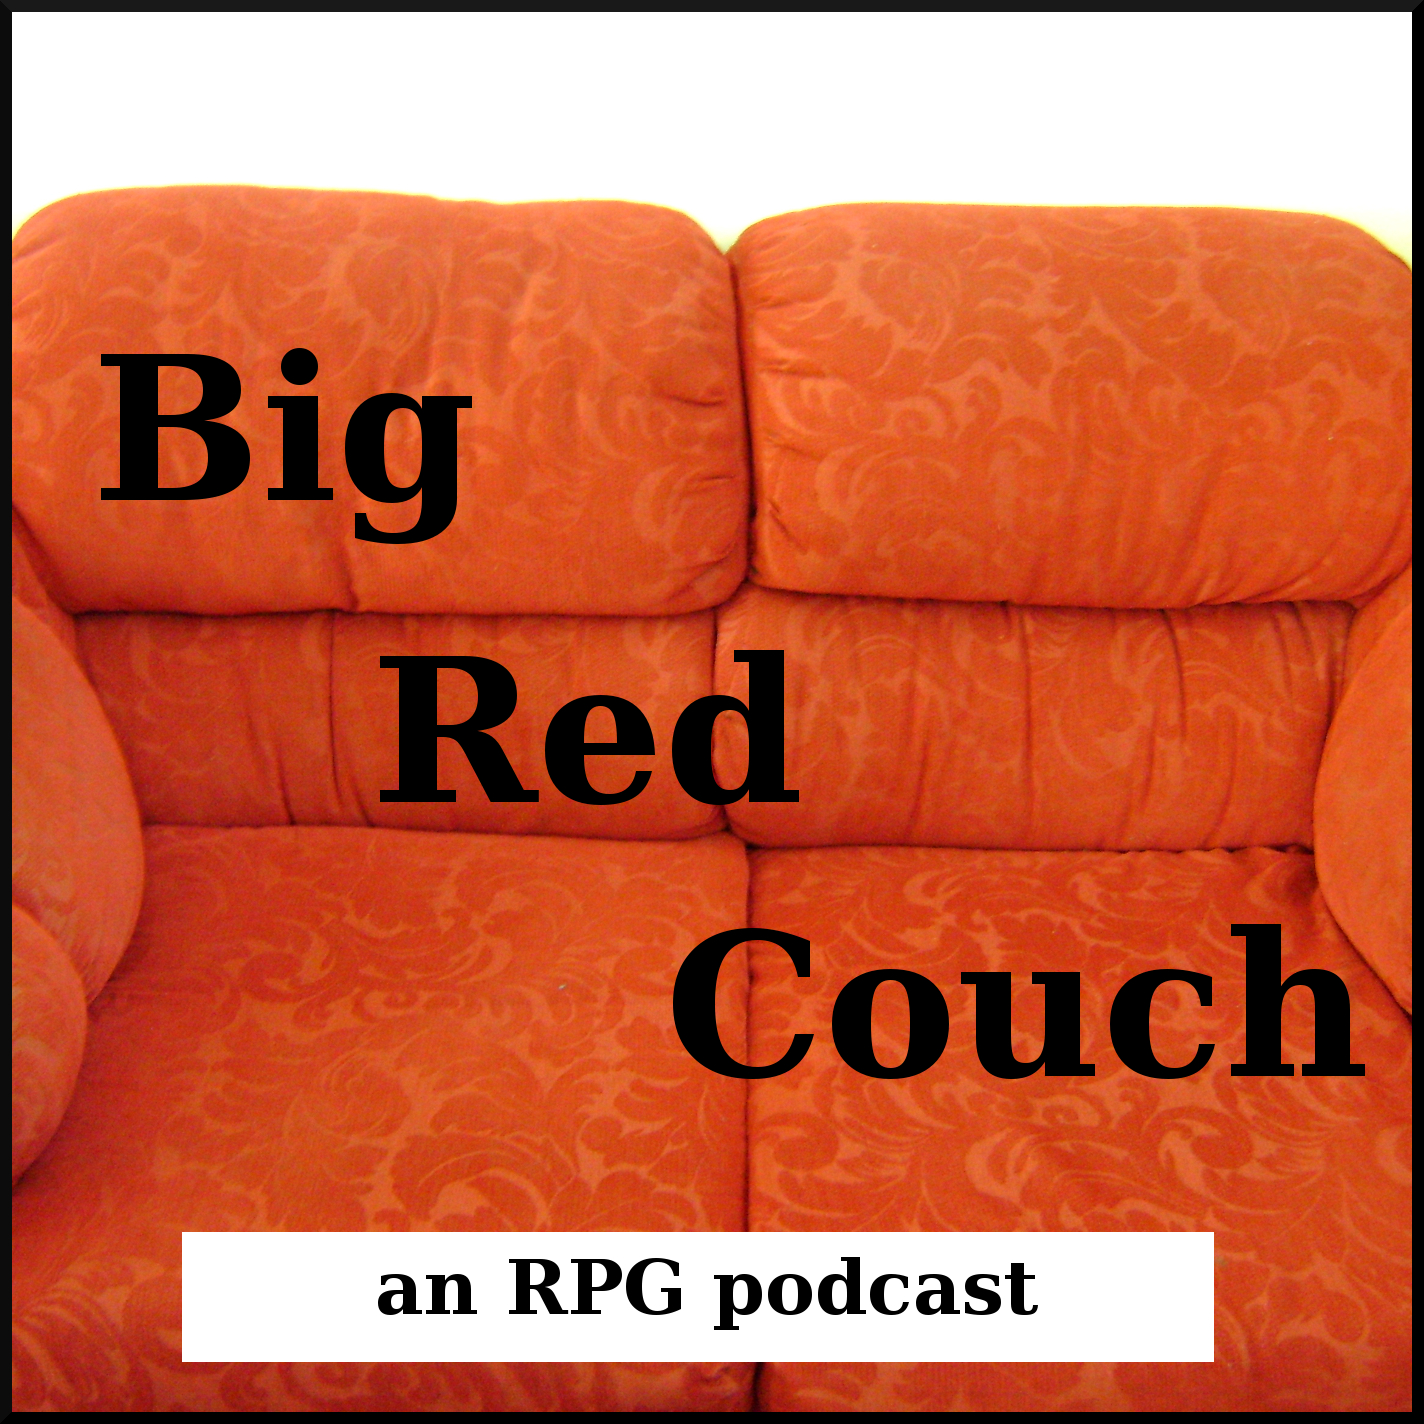 The Big Red Couch logo